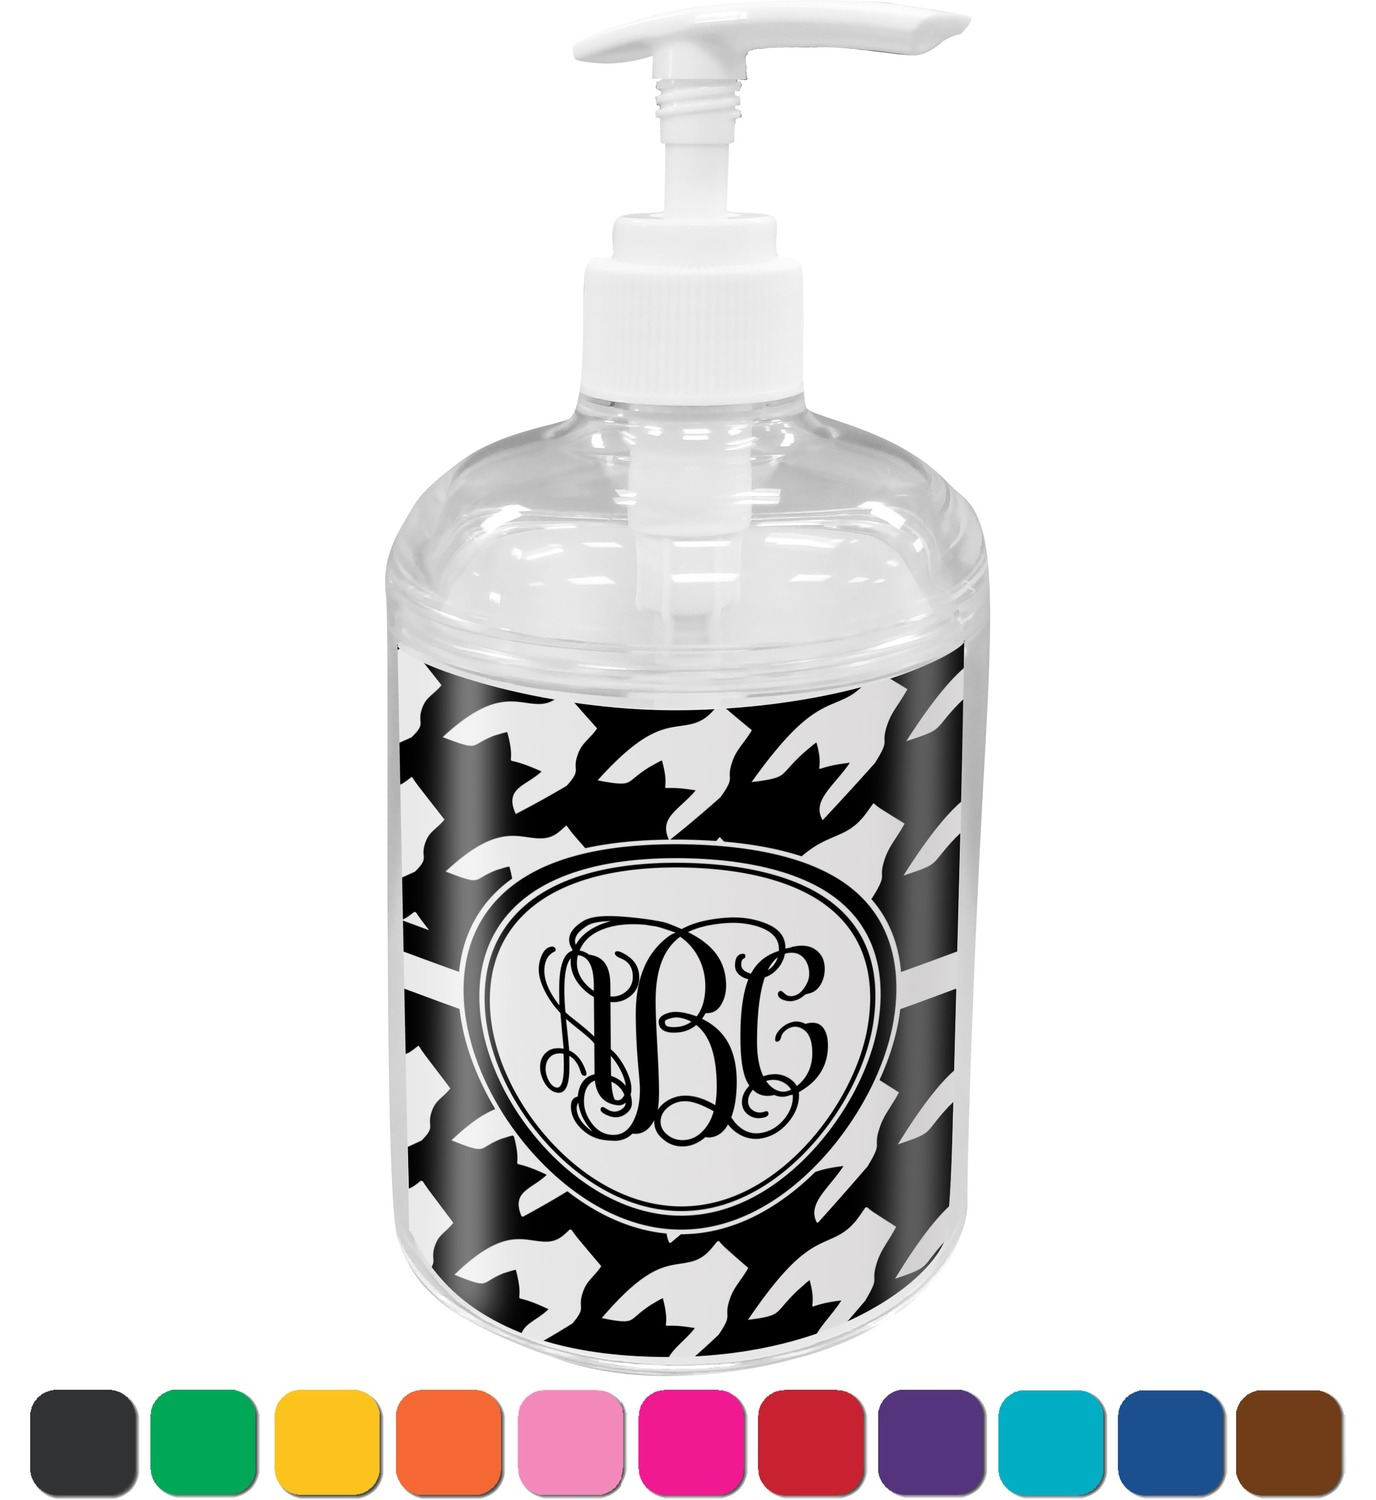 Houndstooth Soap / Lotion Dispenser (Personalized) - YouCustomizeIt